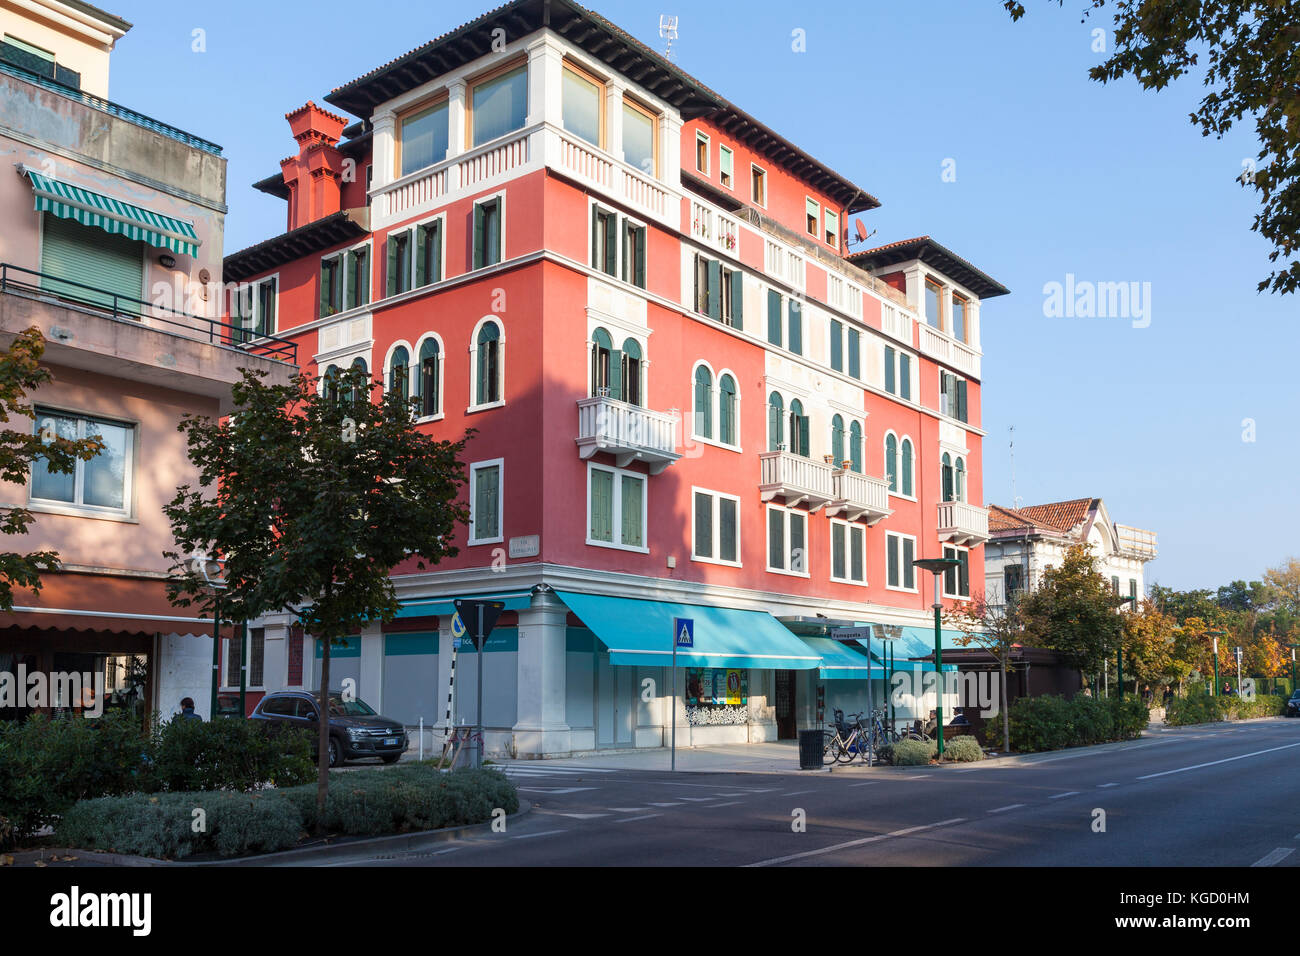 Venice autumn stock photos venice autumn stock images for Apartments with shops below